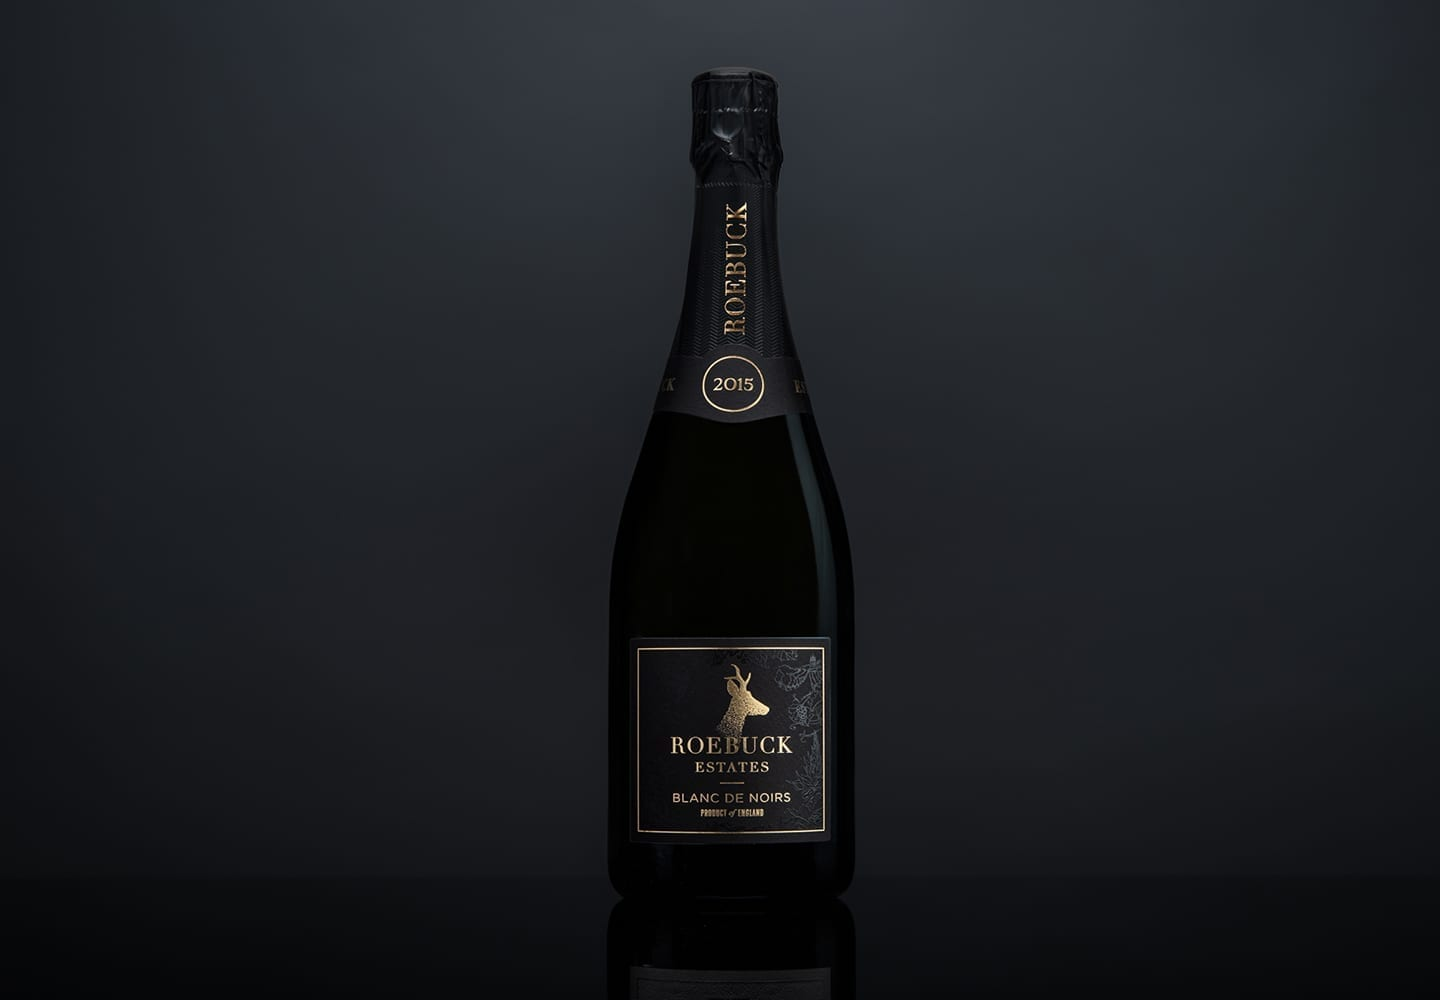 Feature_Roebuck Estates Blanc de Noirs 2015